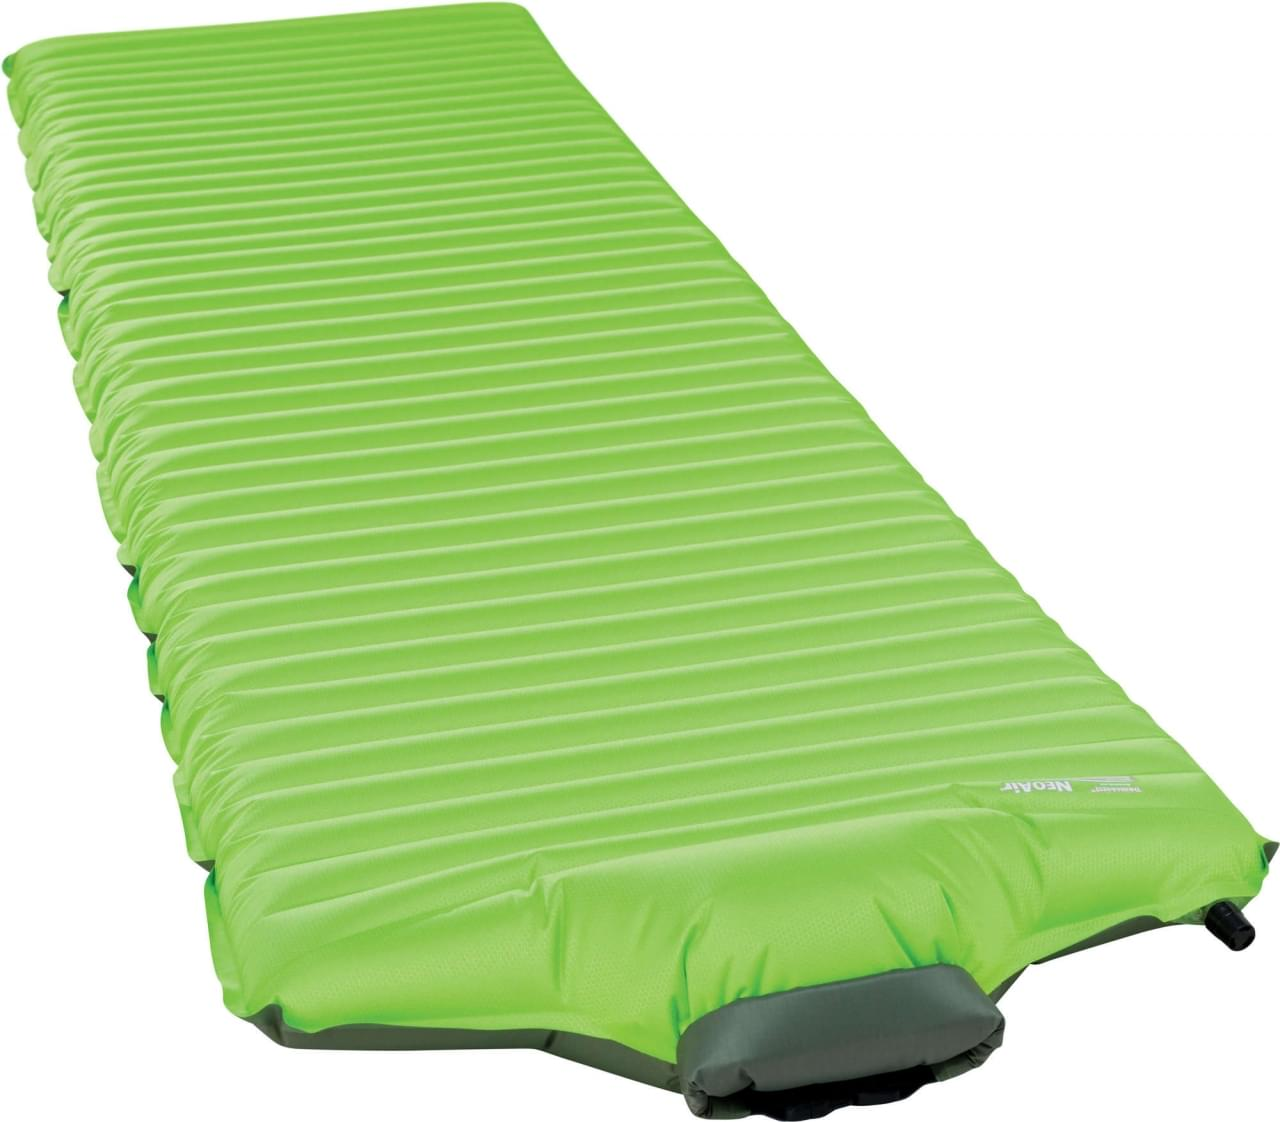 Therm-A-Rest NeoAir All Season SV Large Slaapmat